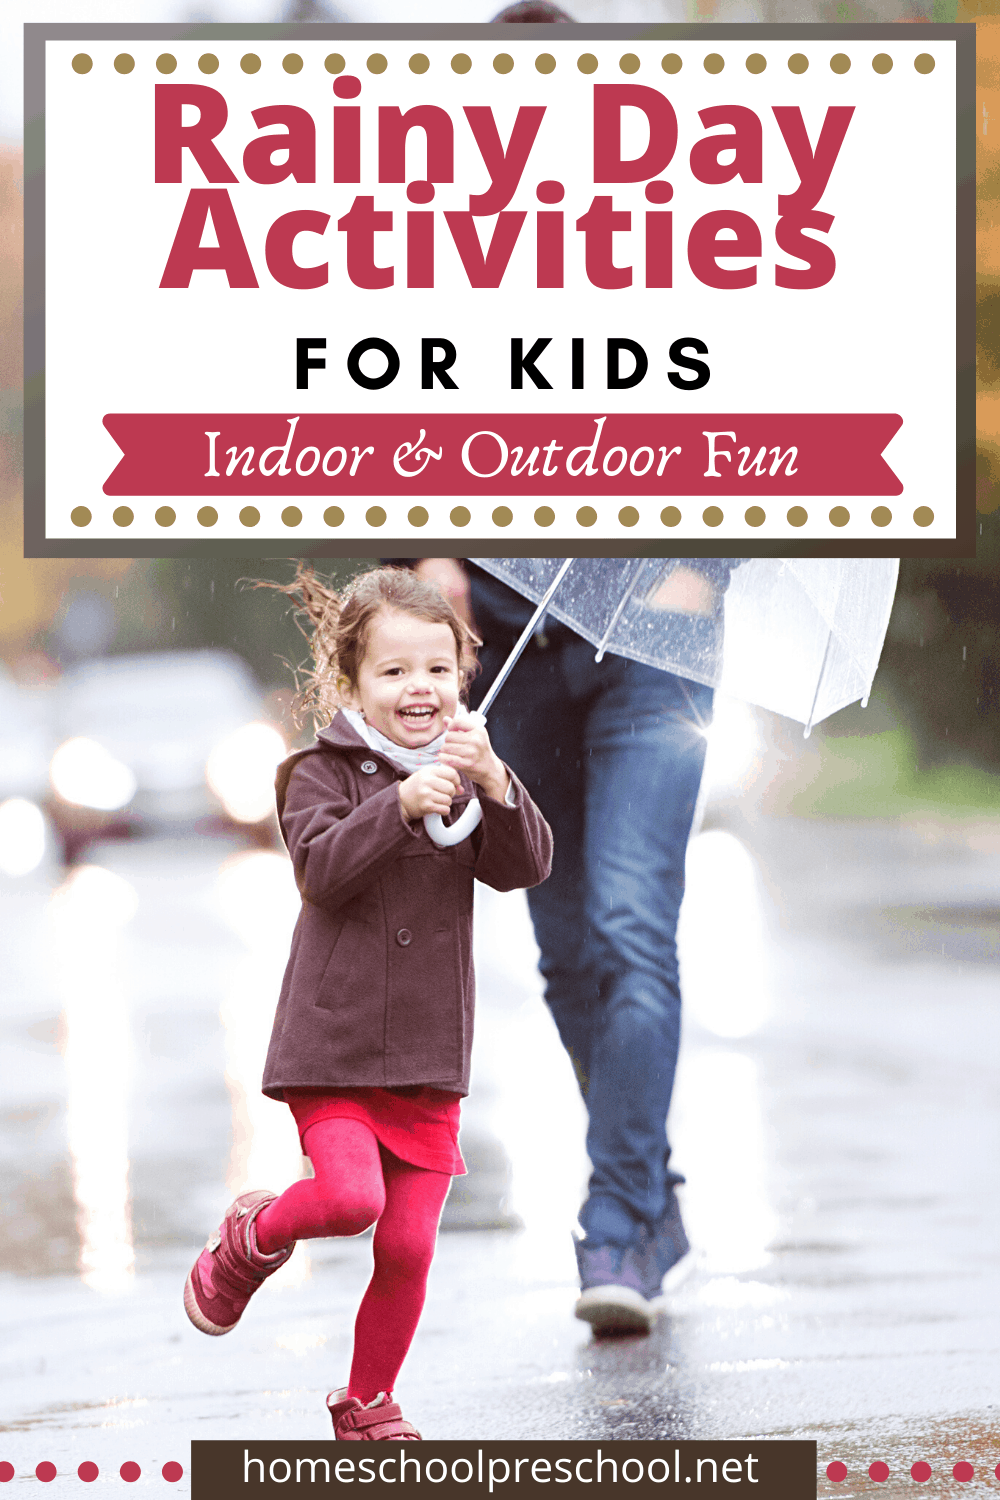 Come discover some fun rainy day activities for preschoolers to enjoy. Whether you spend the day indoors or outside in the rain, we've got you covered.